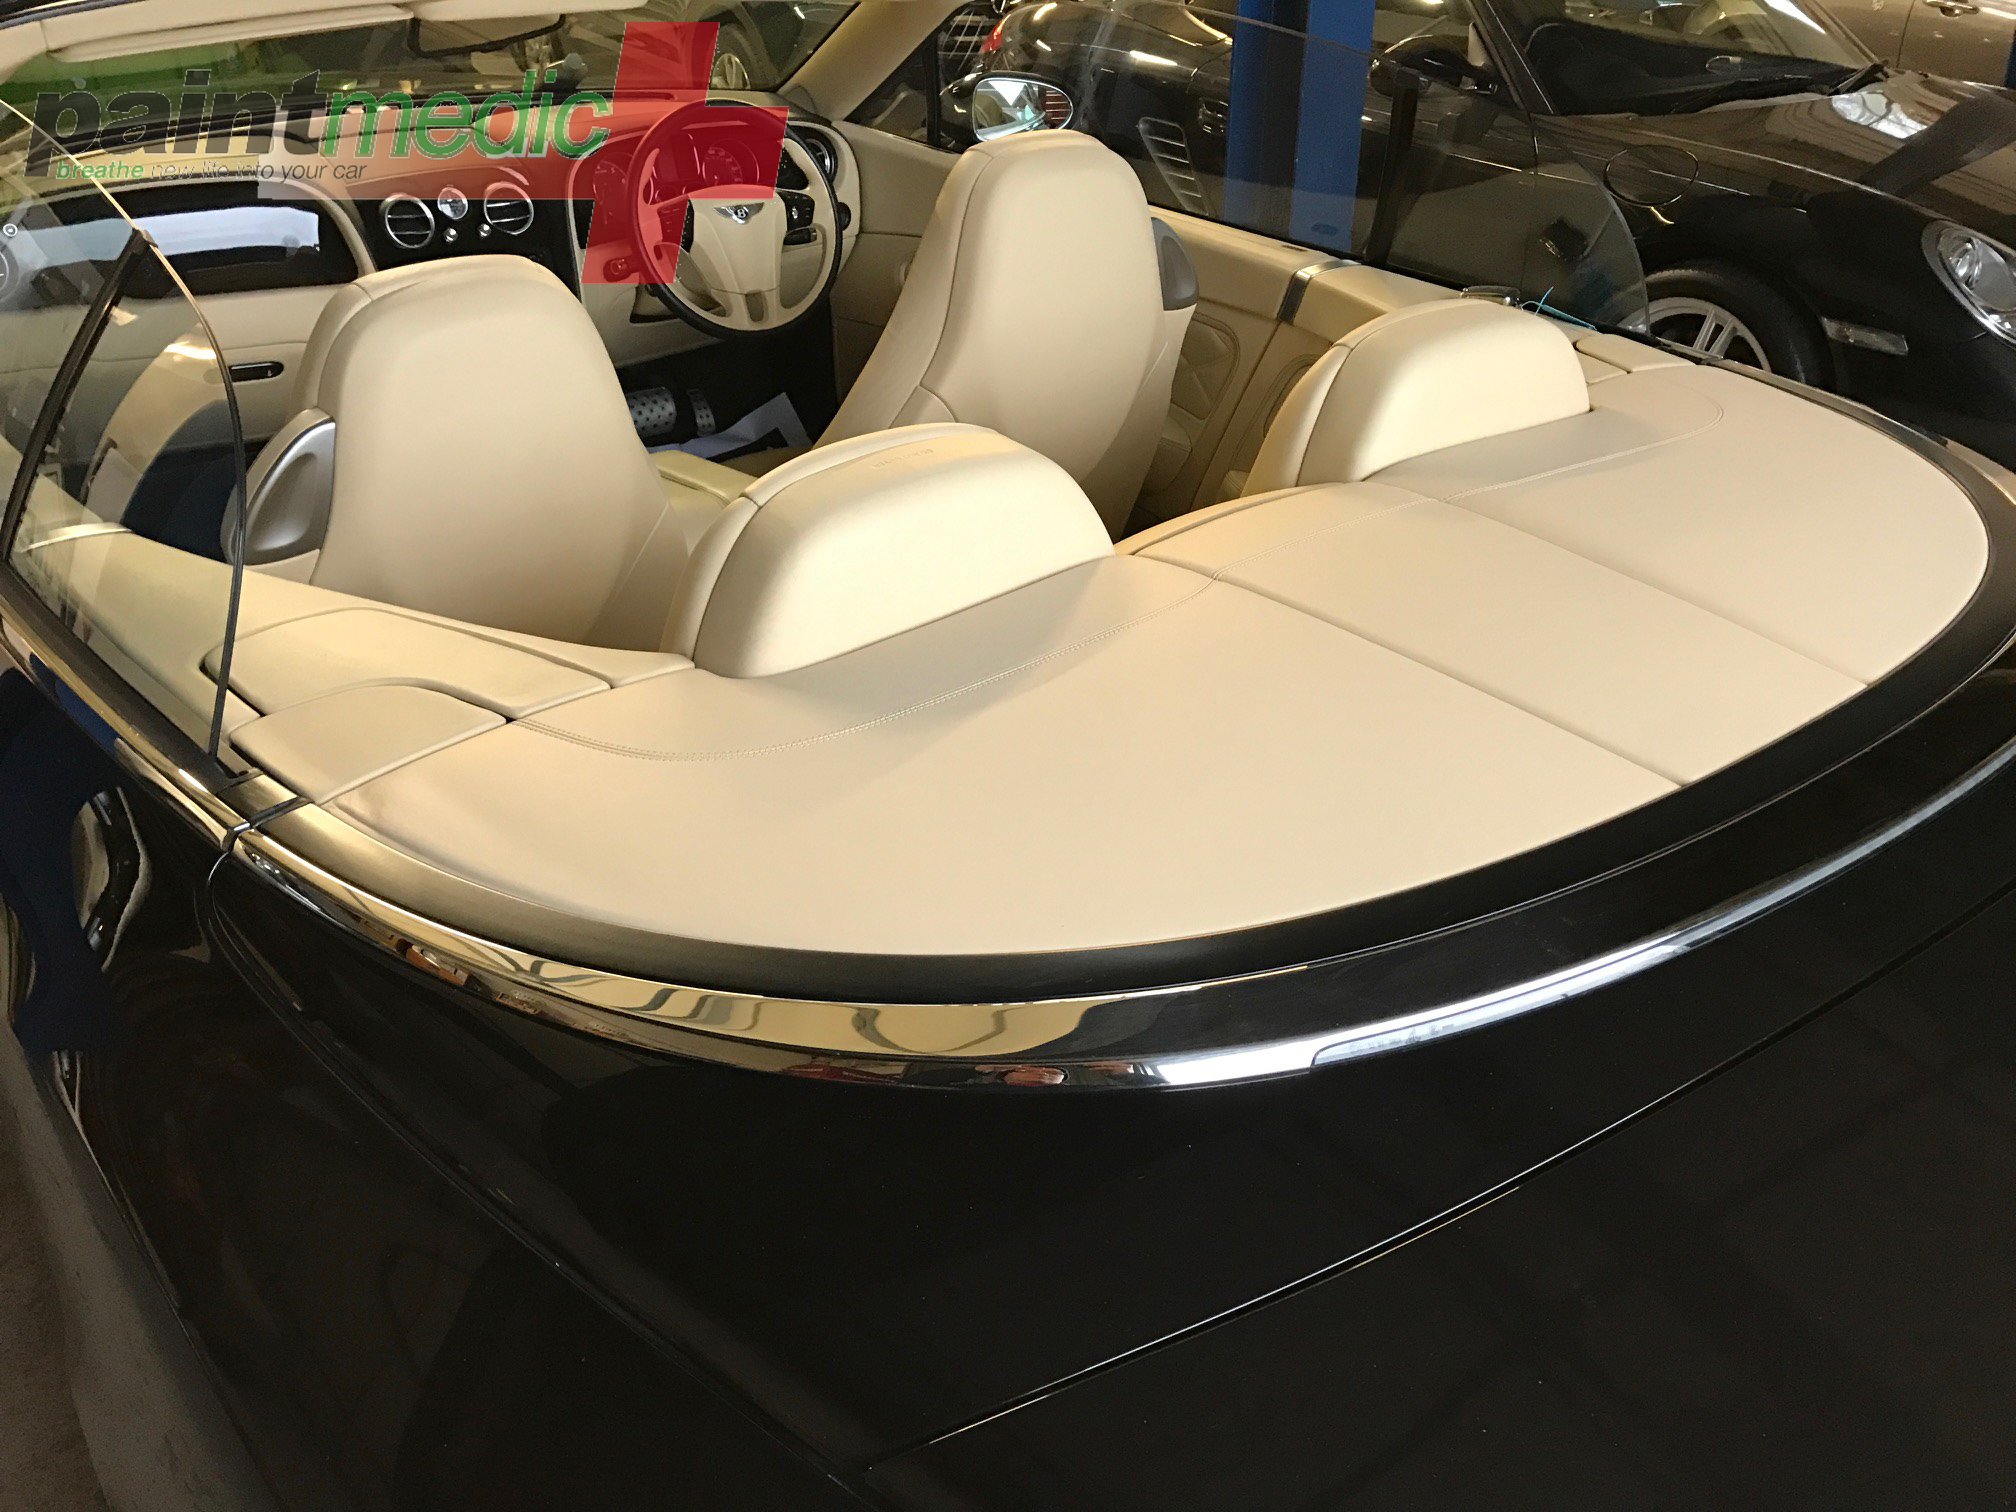 Bentley Continental rear shelf water damage after repair by Paintmedic